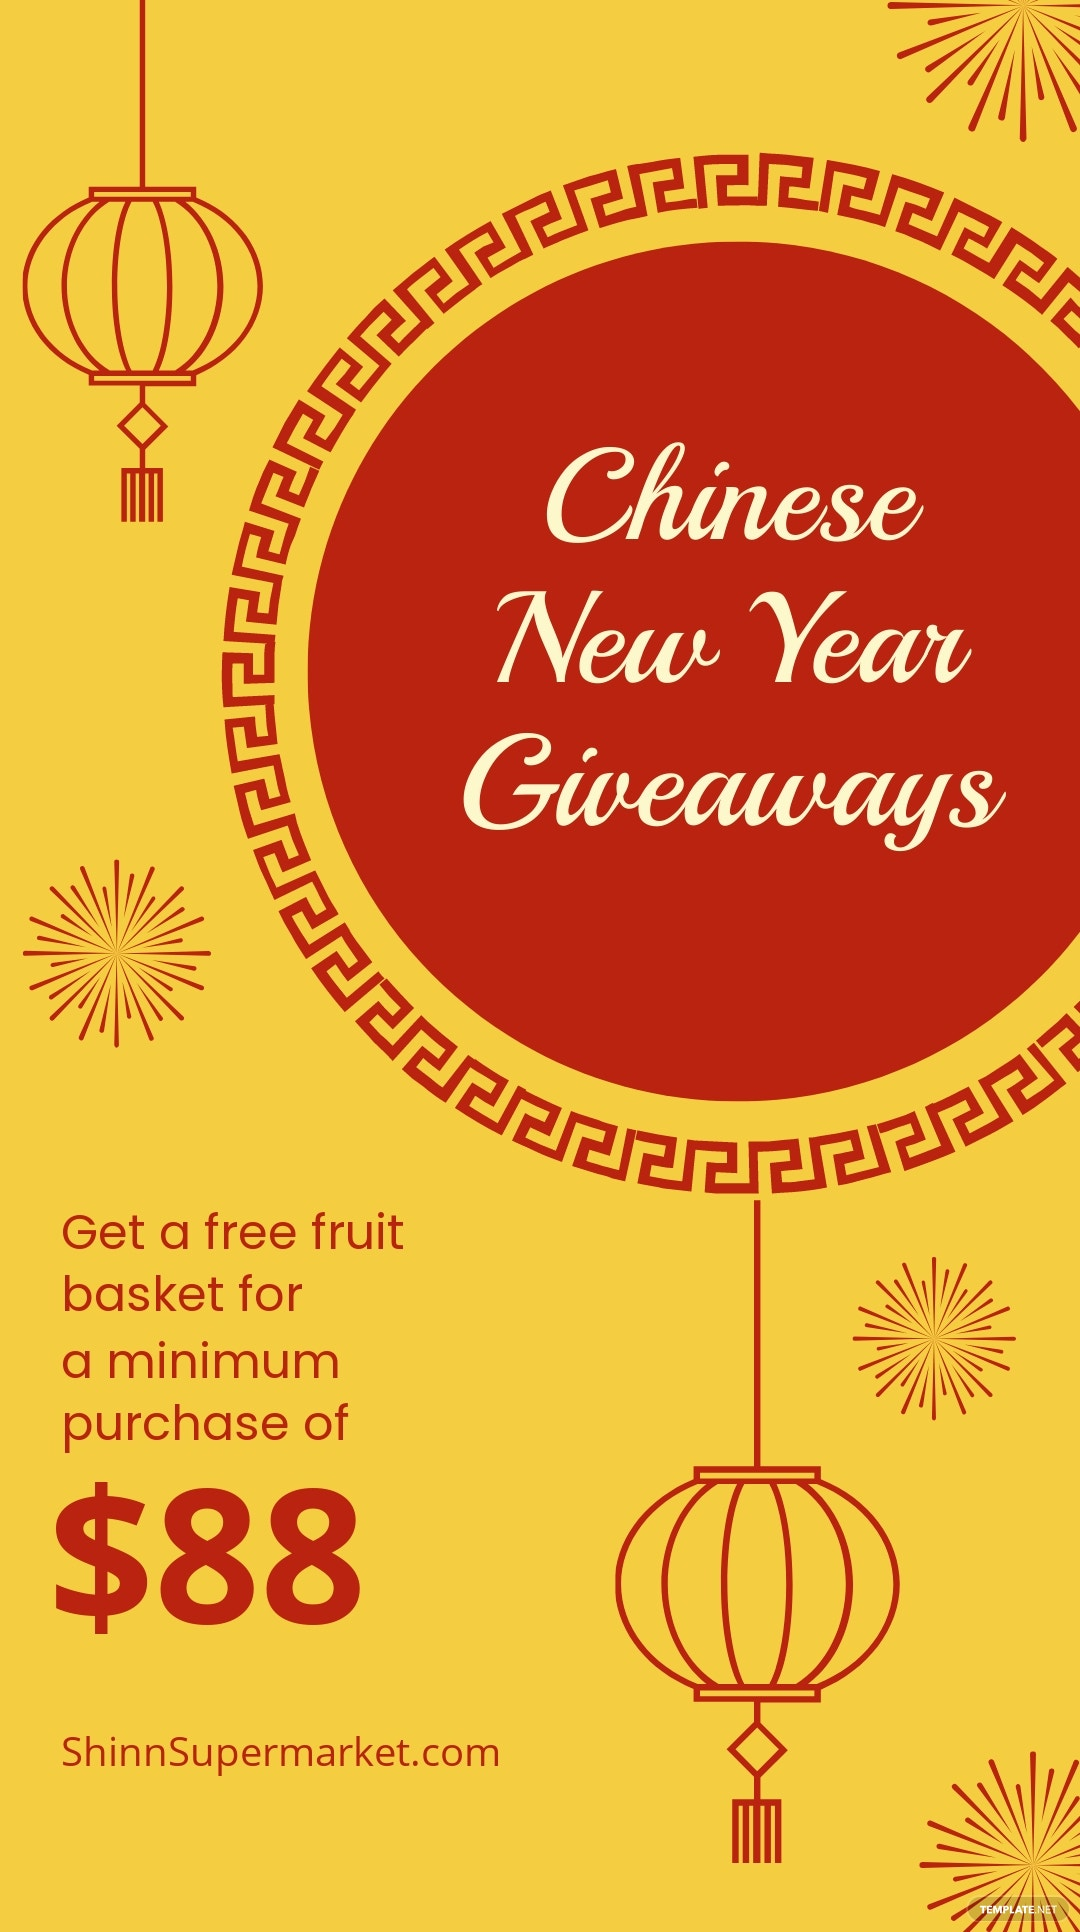 Chinese New Year Giveaway Instagram Story Template 4.jpe